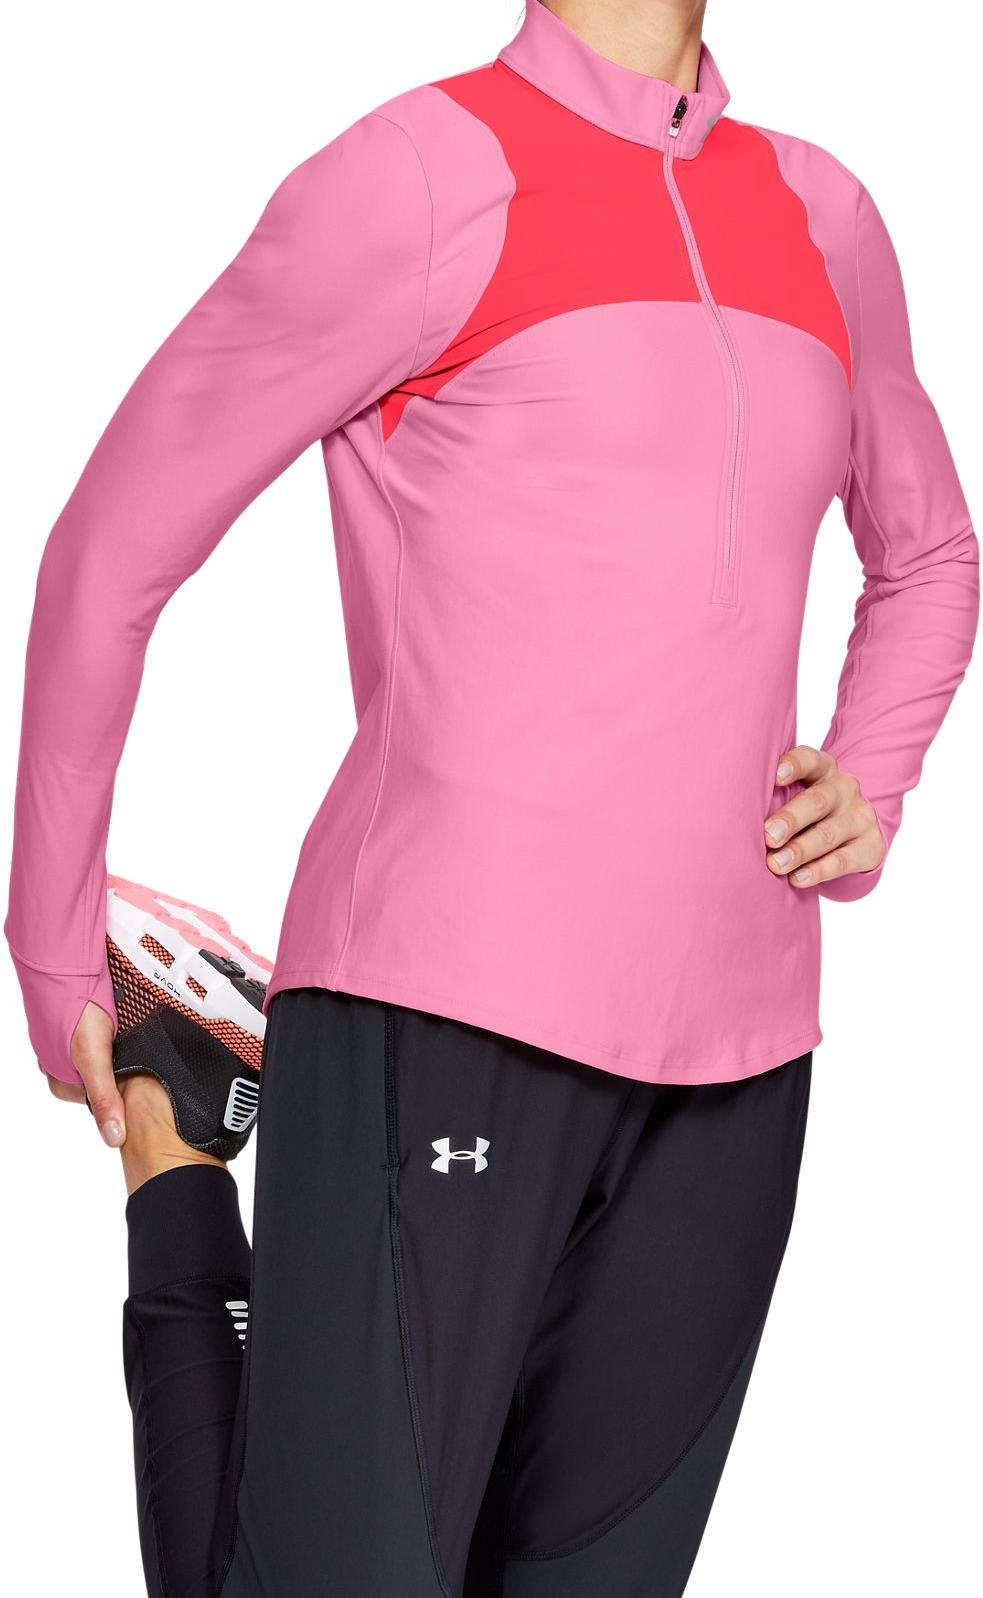 Long-sleeve T-shirt Under Armour UA Qualifier Half Zip